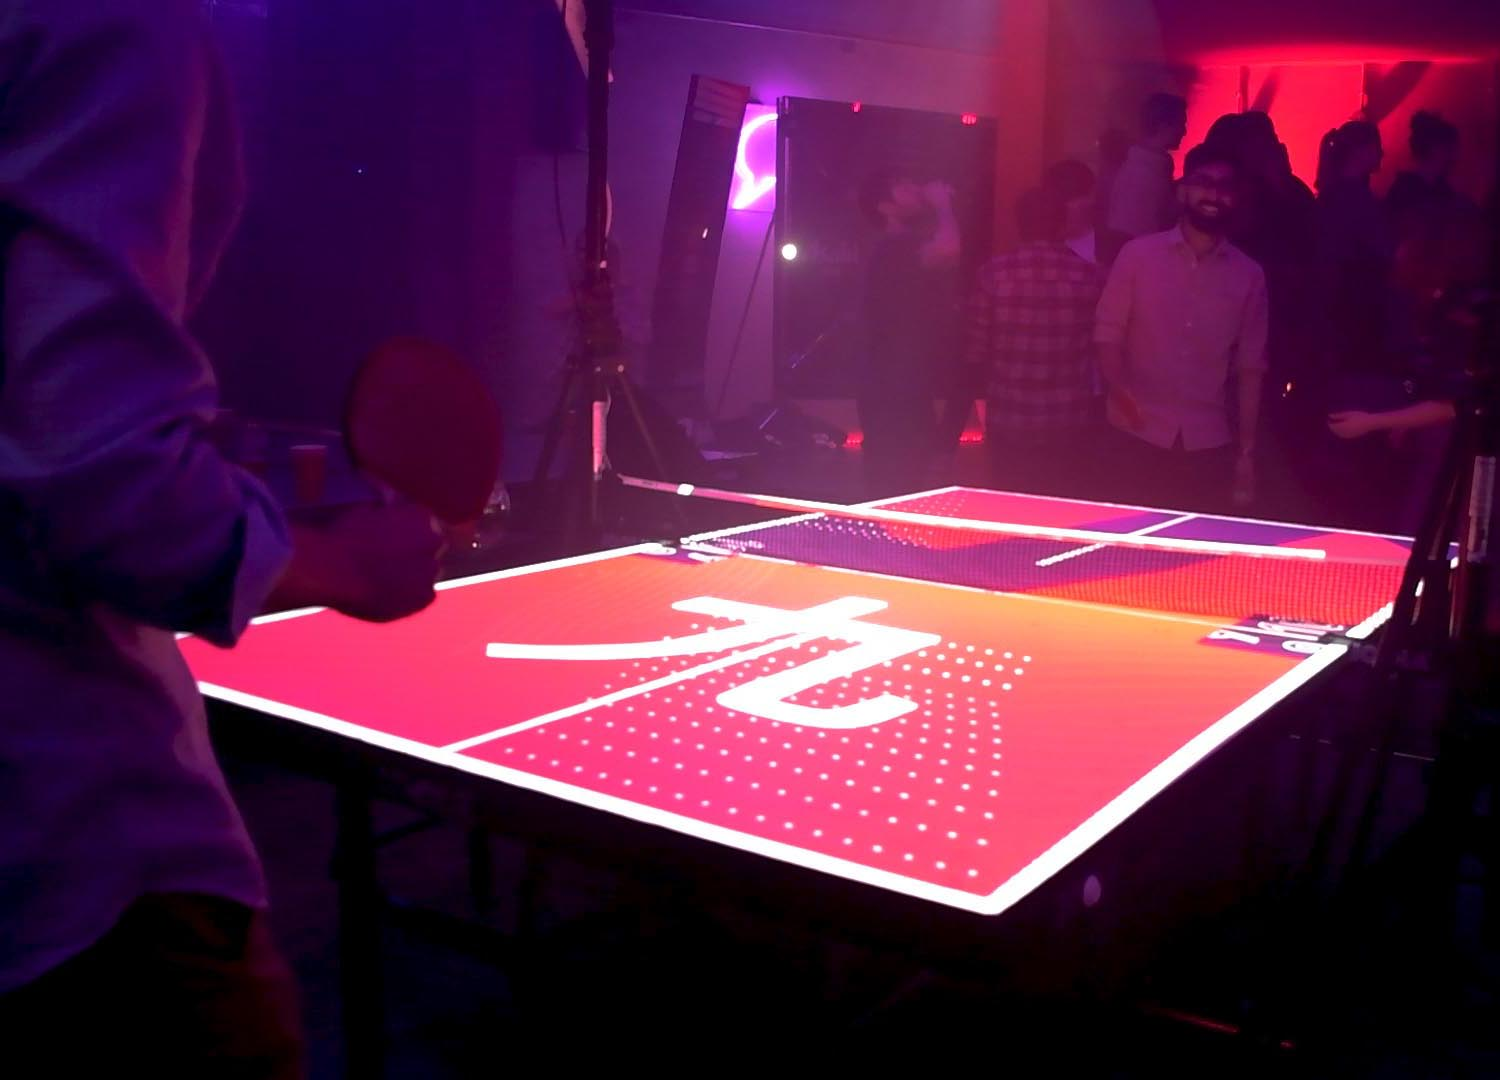 Cover Asahi Interactive Ping Pong Table, with players and projection mapping